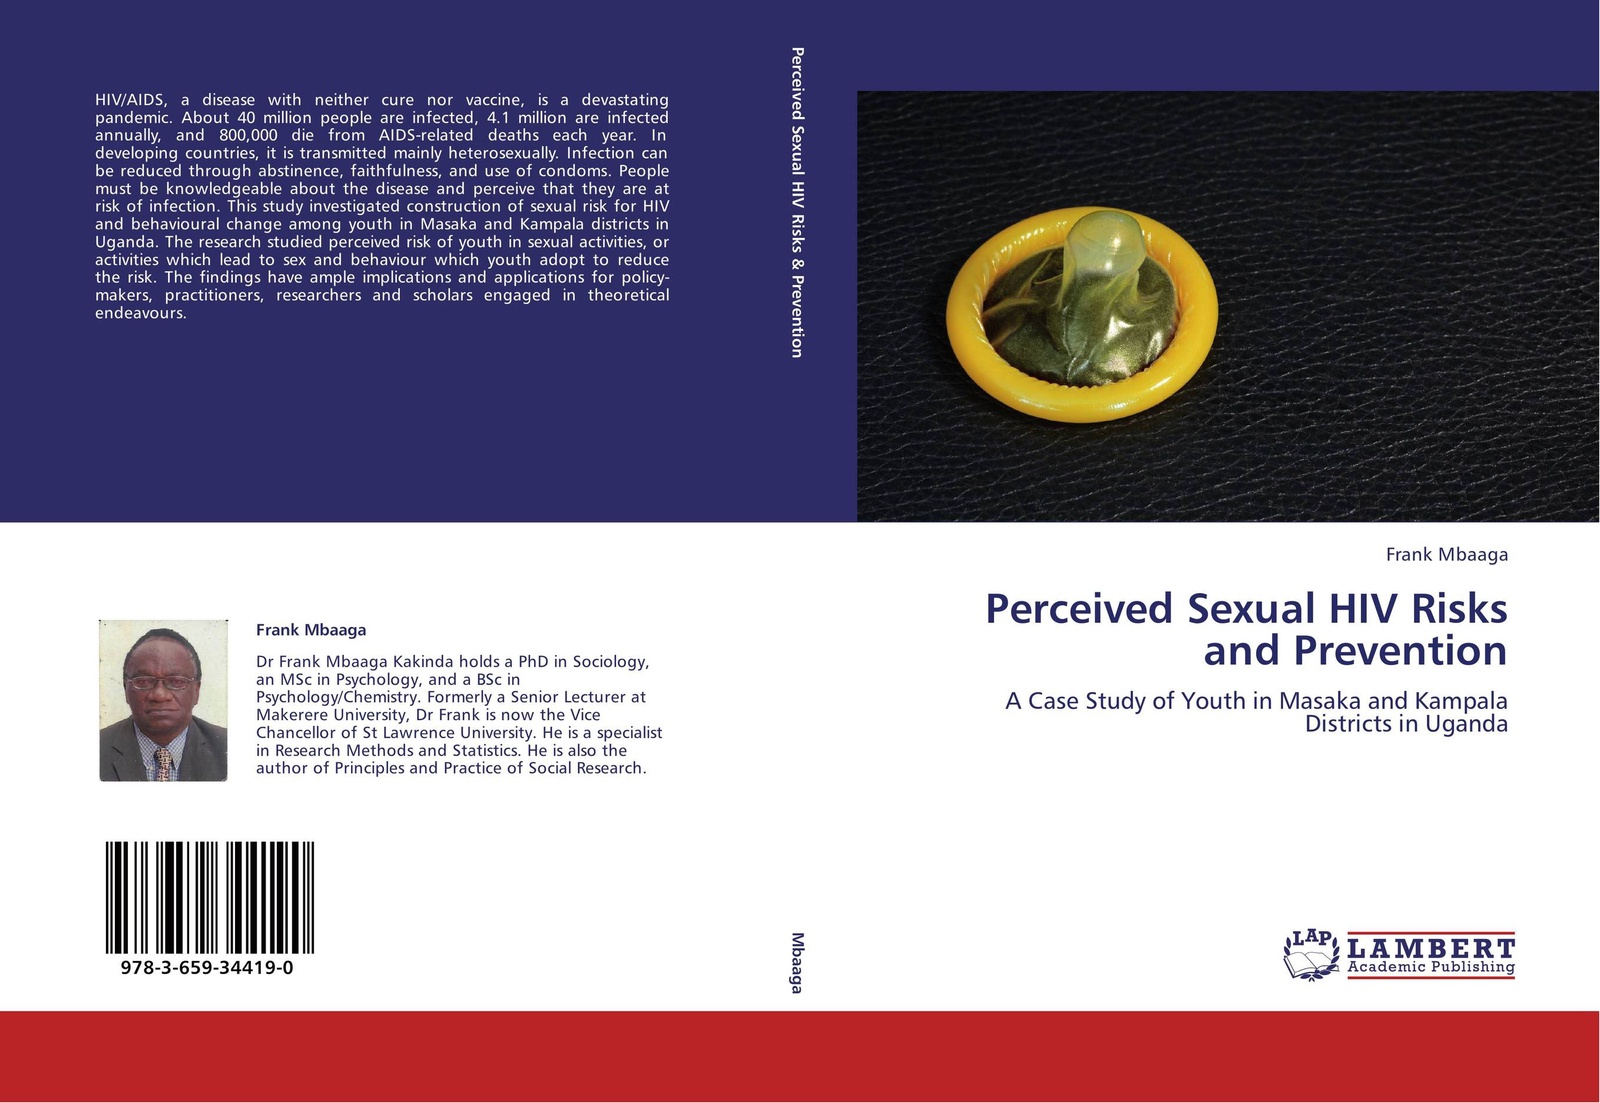 Frank Mbaaga Perceived Sexual HIV Risks and Prevention western culture and behavioral change among the youth in uganda